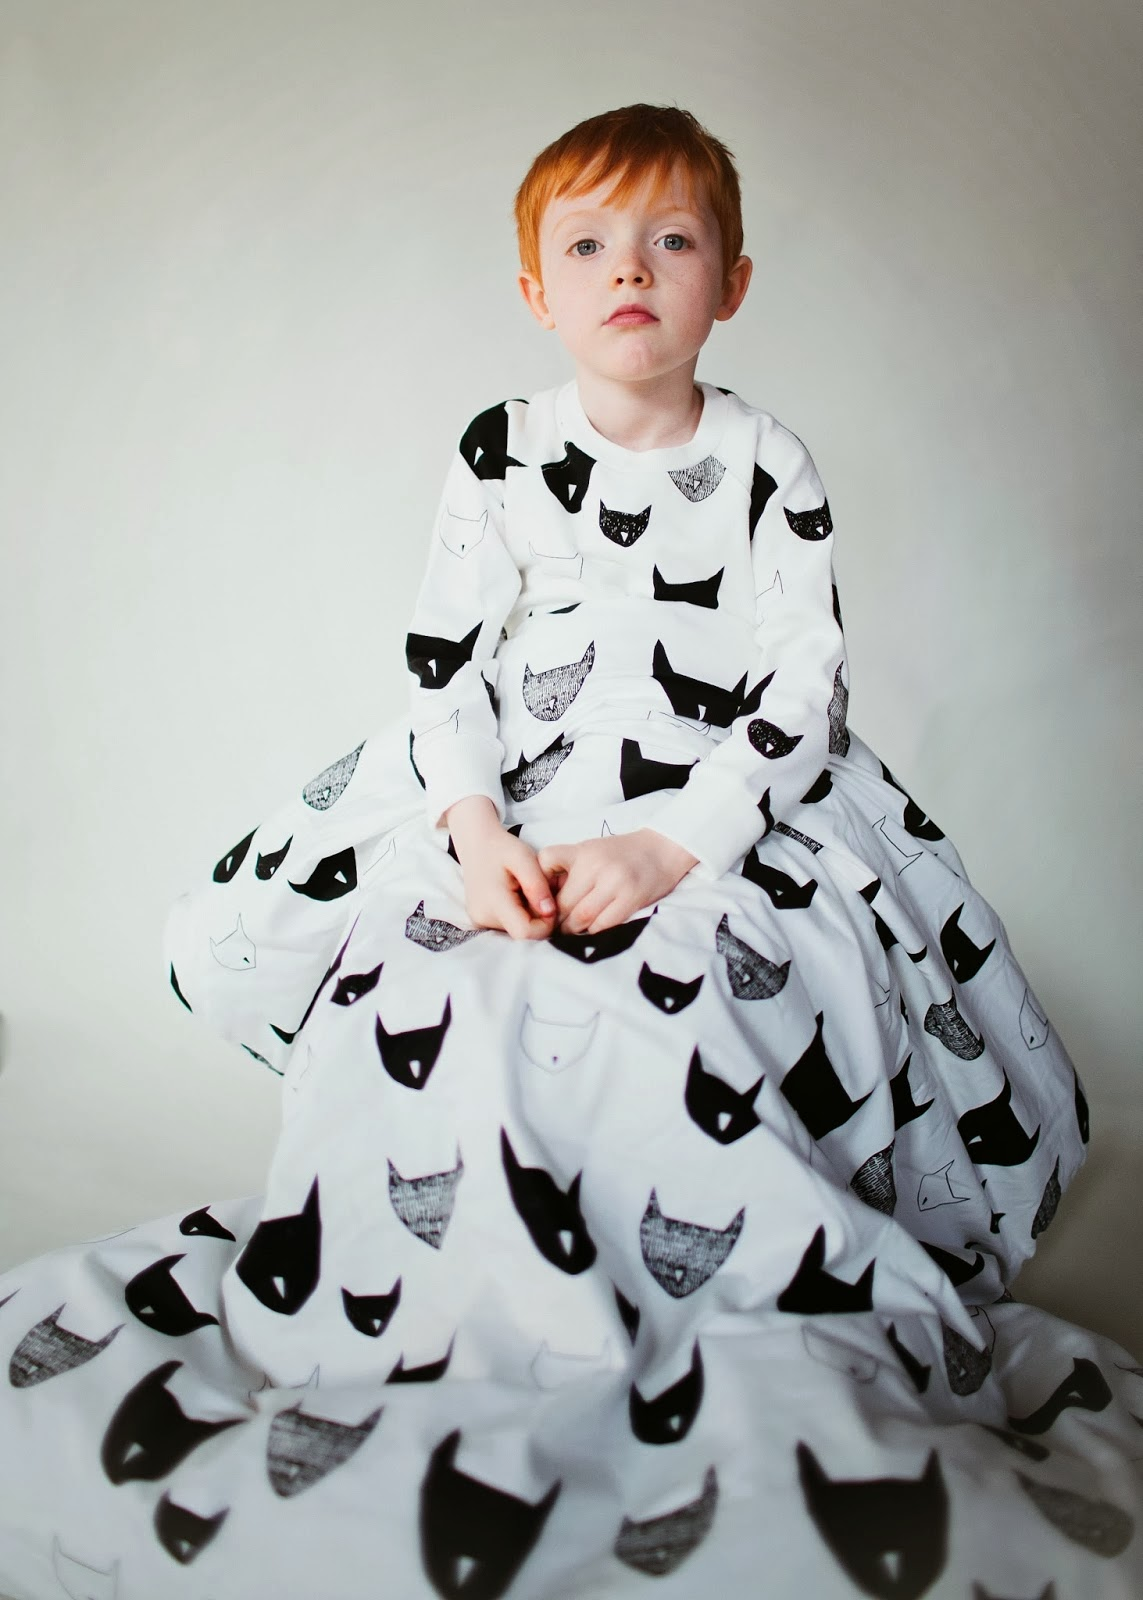 Beau Loves bed linen - kids fashion photography by Flannery O'Kafka for spring 2014